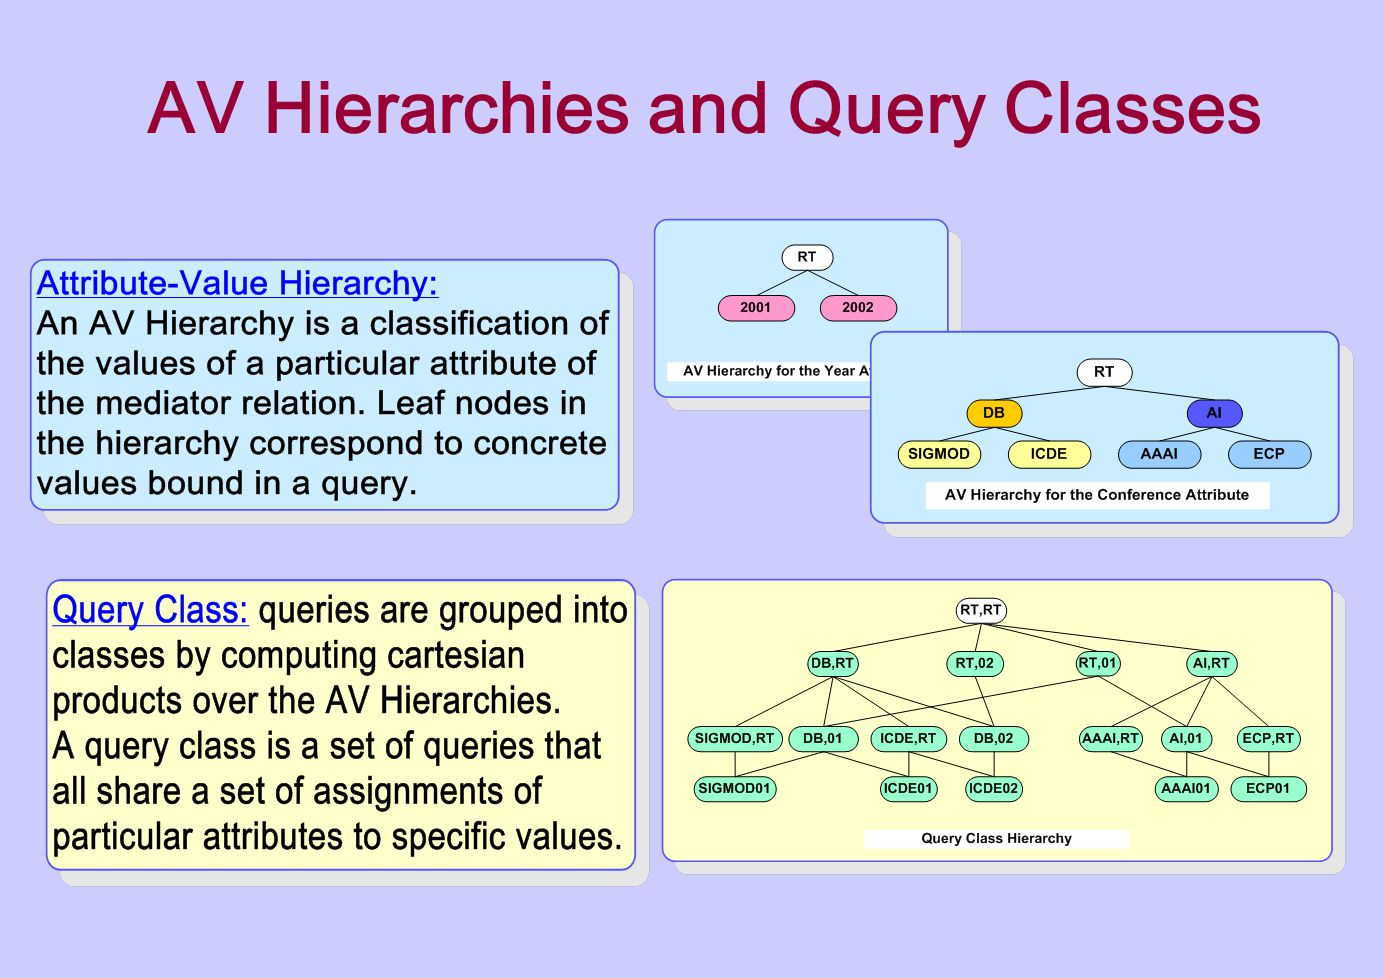 AV Hierarchies and Query Classes